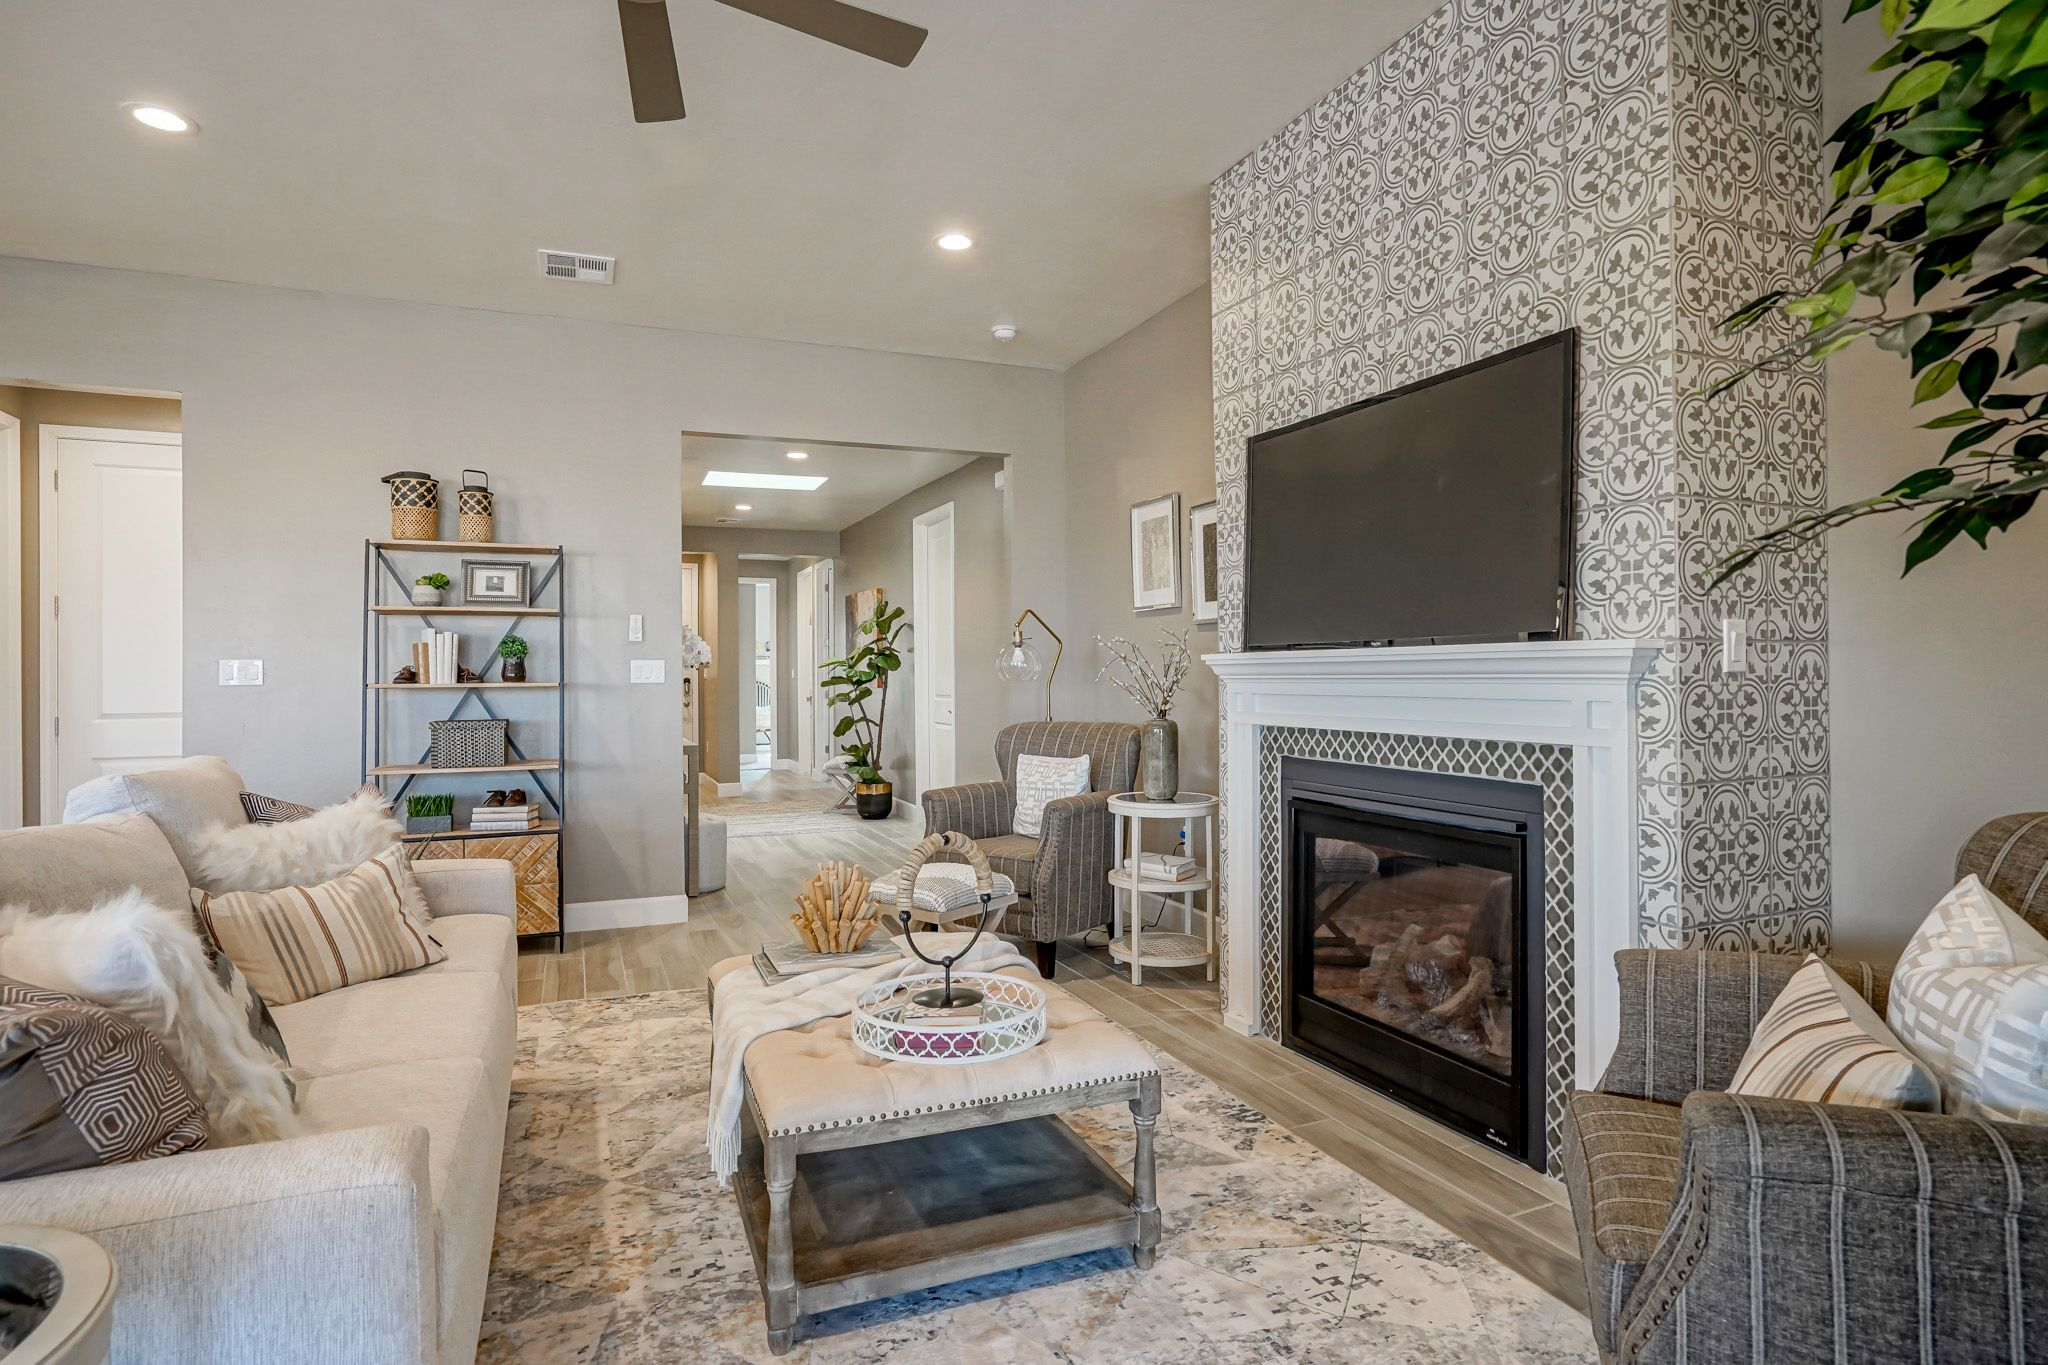 Living Area featured in The Jane By Abrazo Homes in Albuquerque, NM